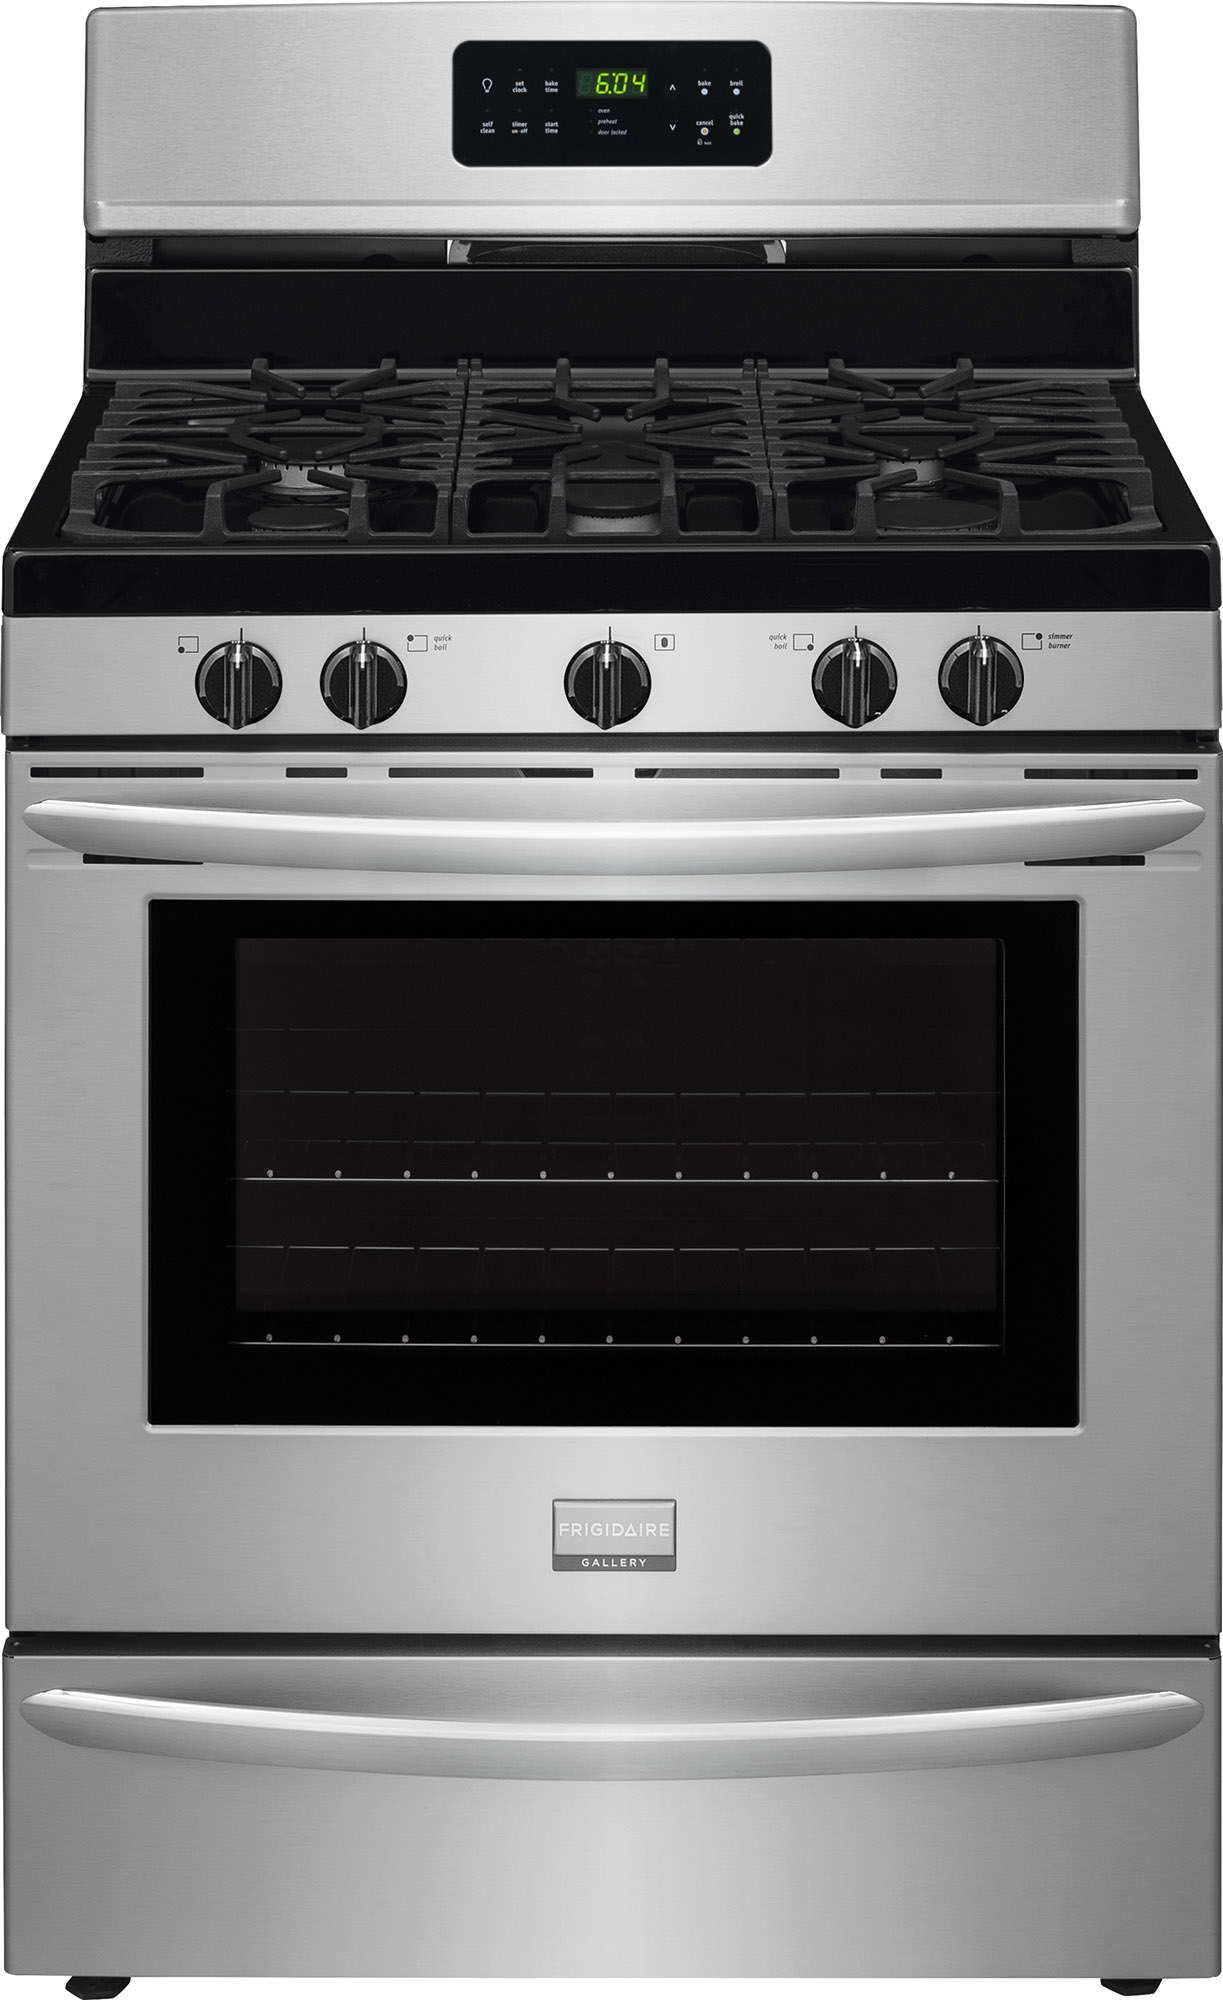 Frigidaire Dggf3045rf 30 Gallery Series Gas Freestanding Range Frigidaire Up To 450 Rebate For Individual Category Purchases Buy Any Eligible Frigidaire Di